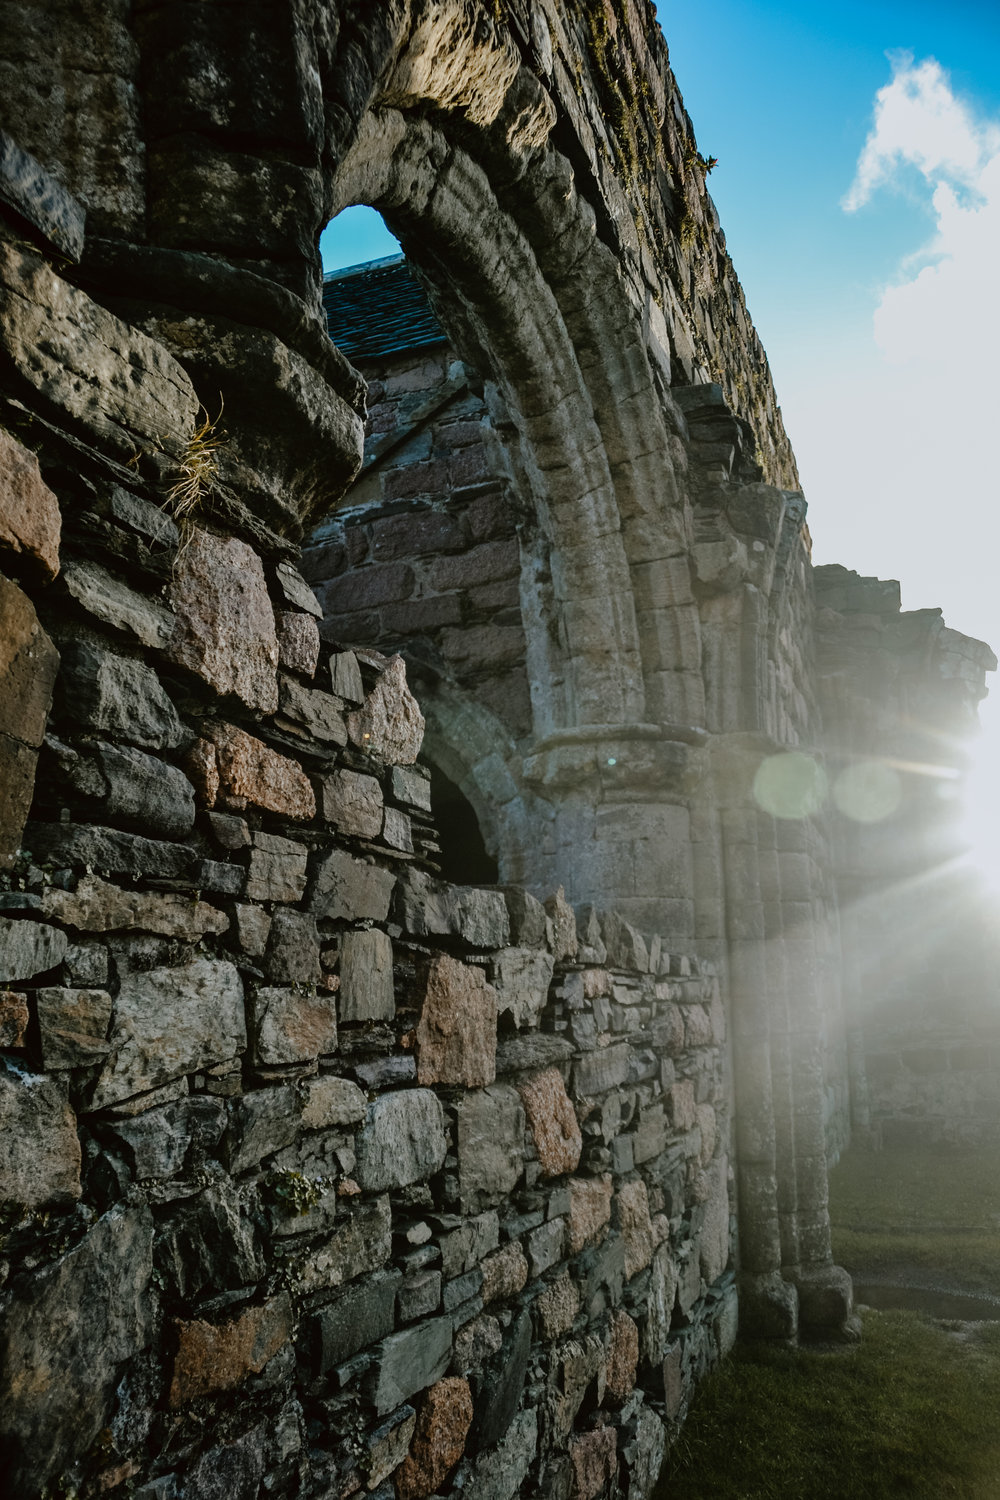 Arches of Iona's nunnery